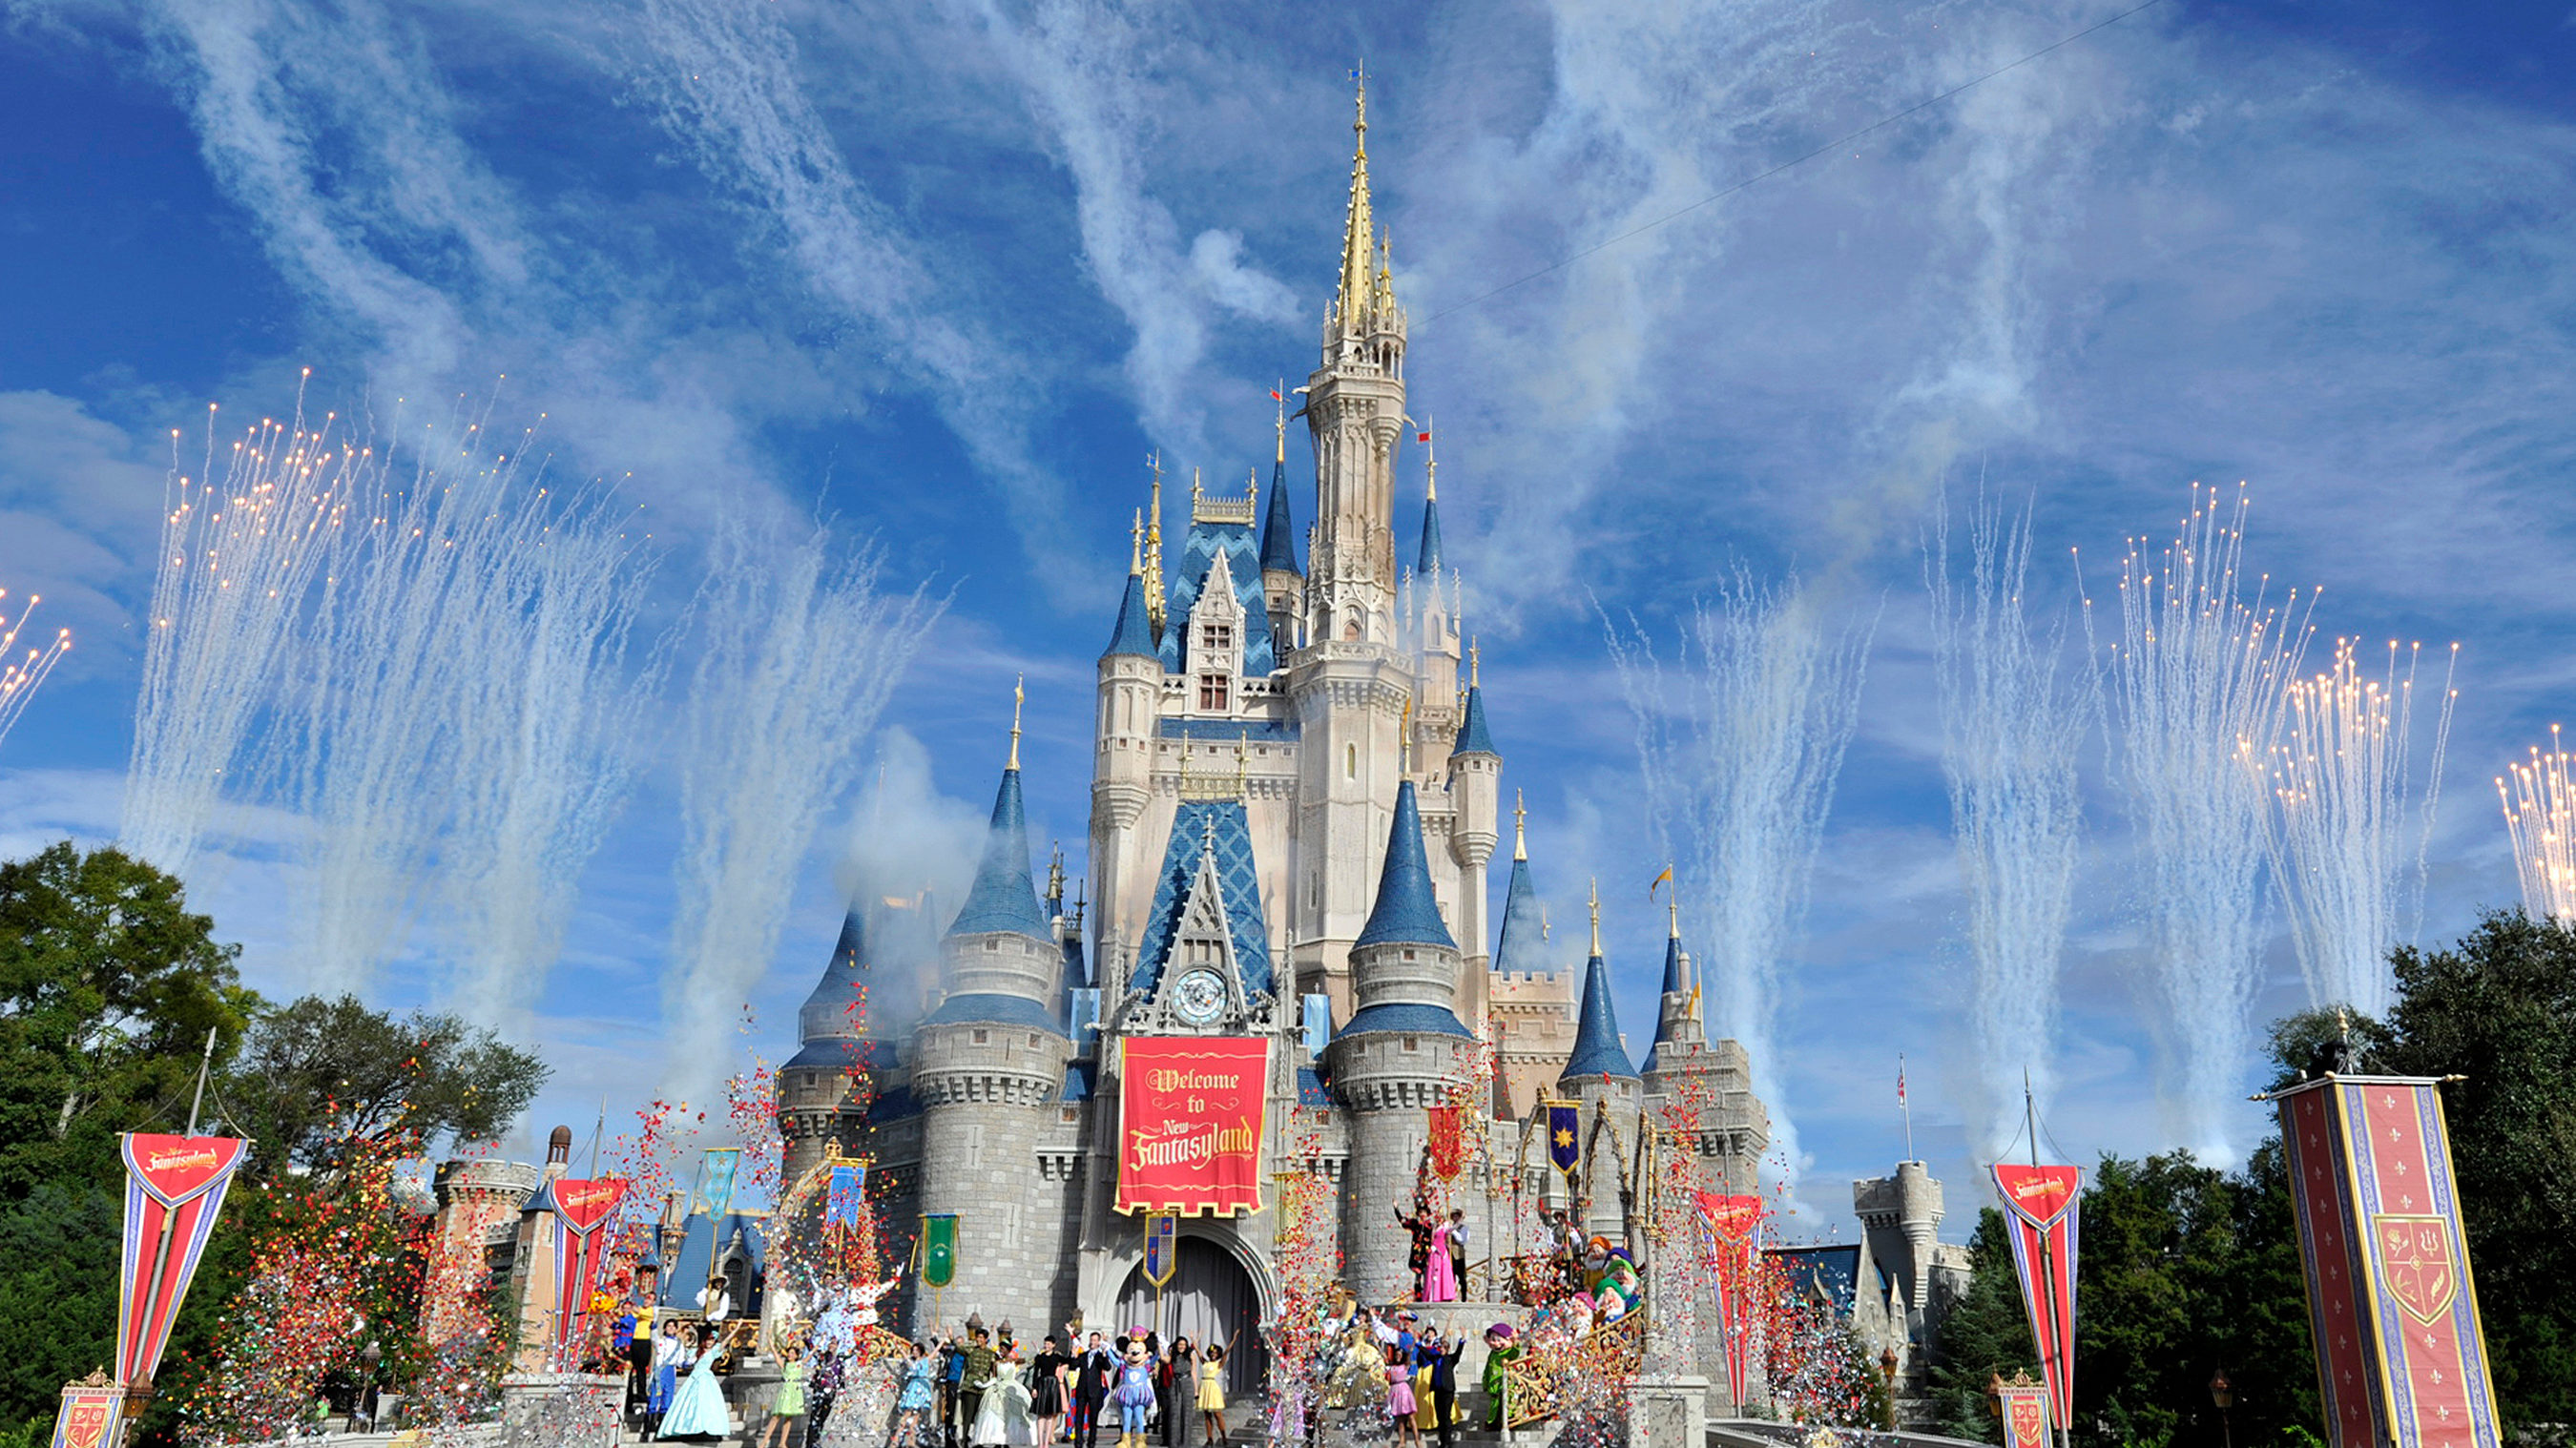 Disney world offers upto 20% discount this fall and winter season